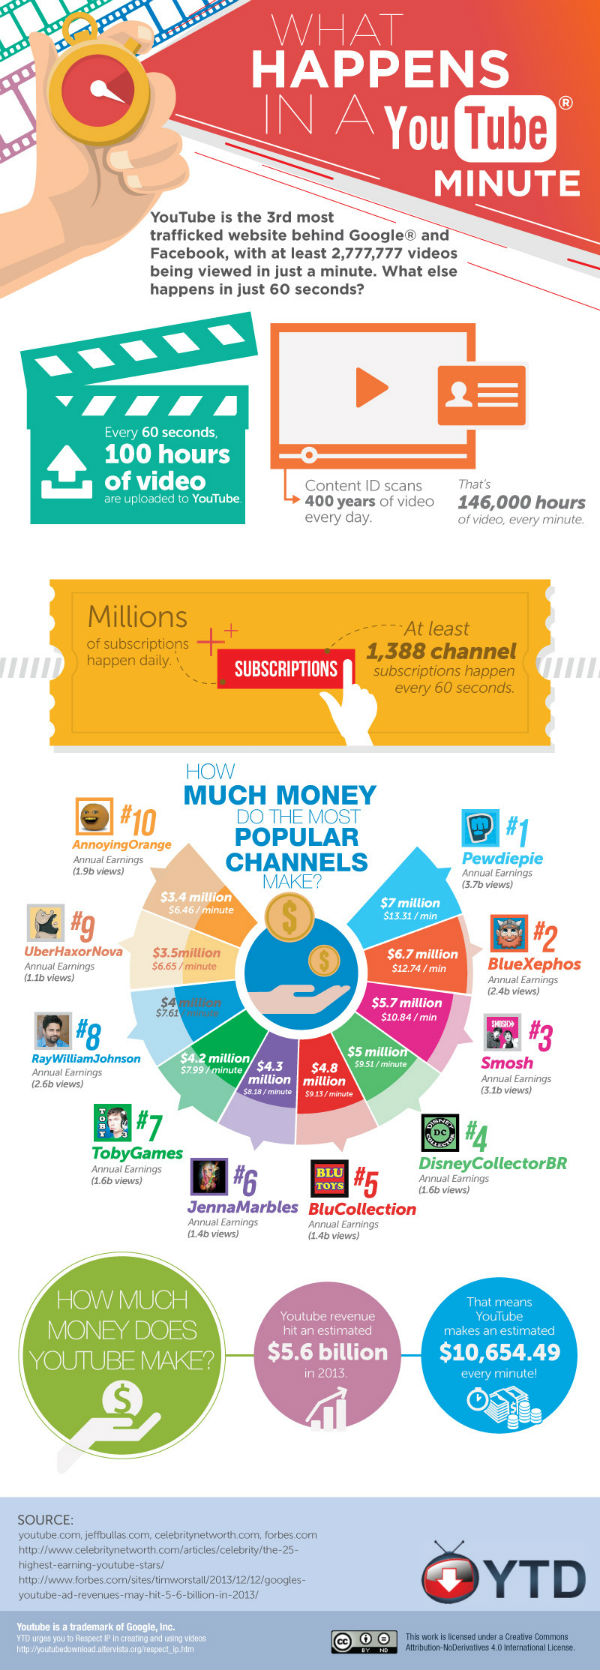 What Happens in Just ONE Minute on #YouTube - #infographic #socialmedia